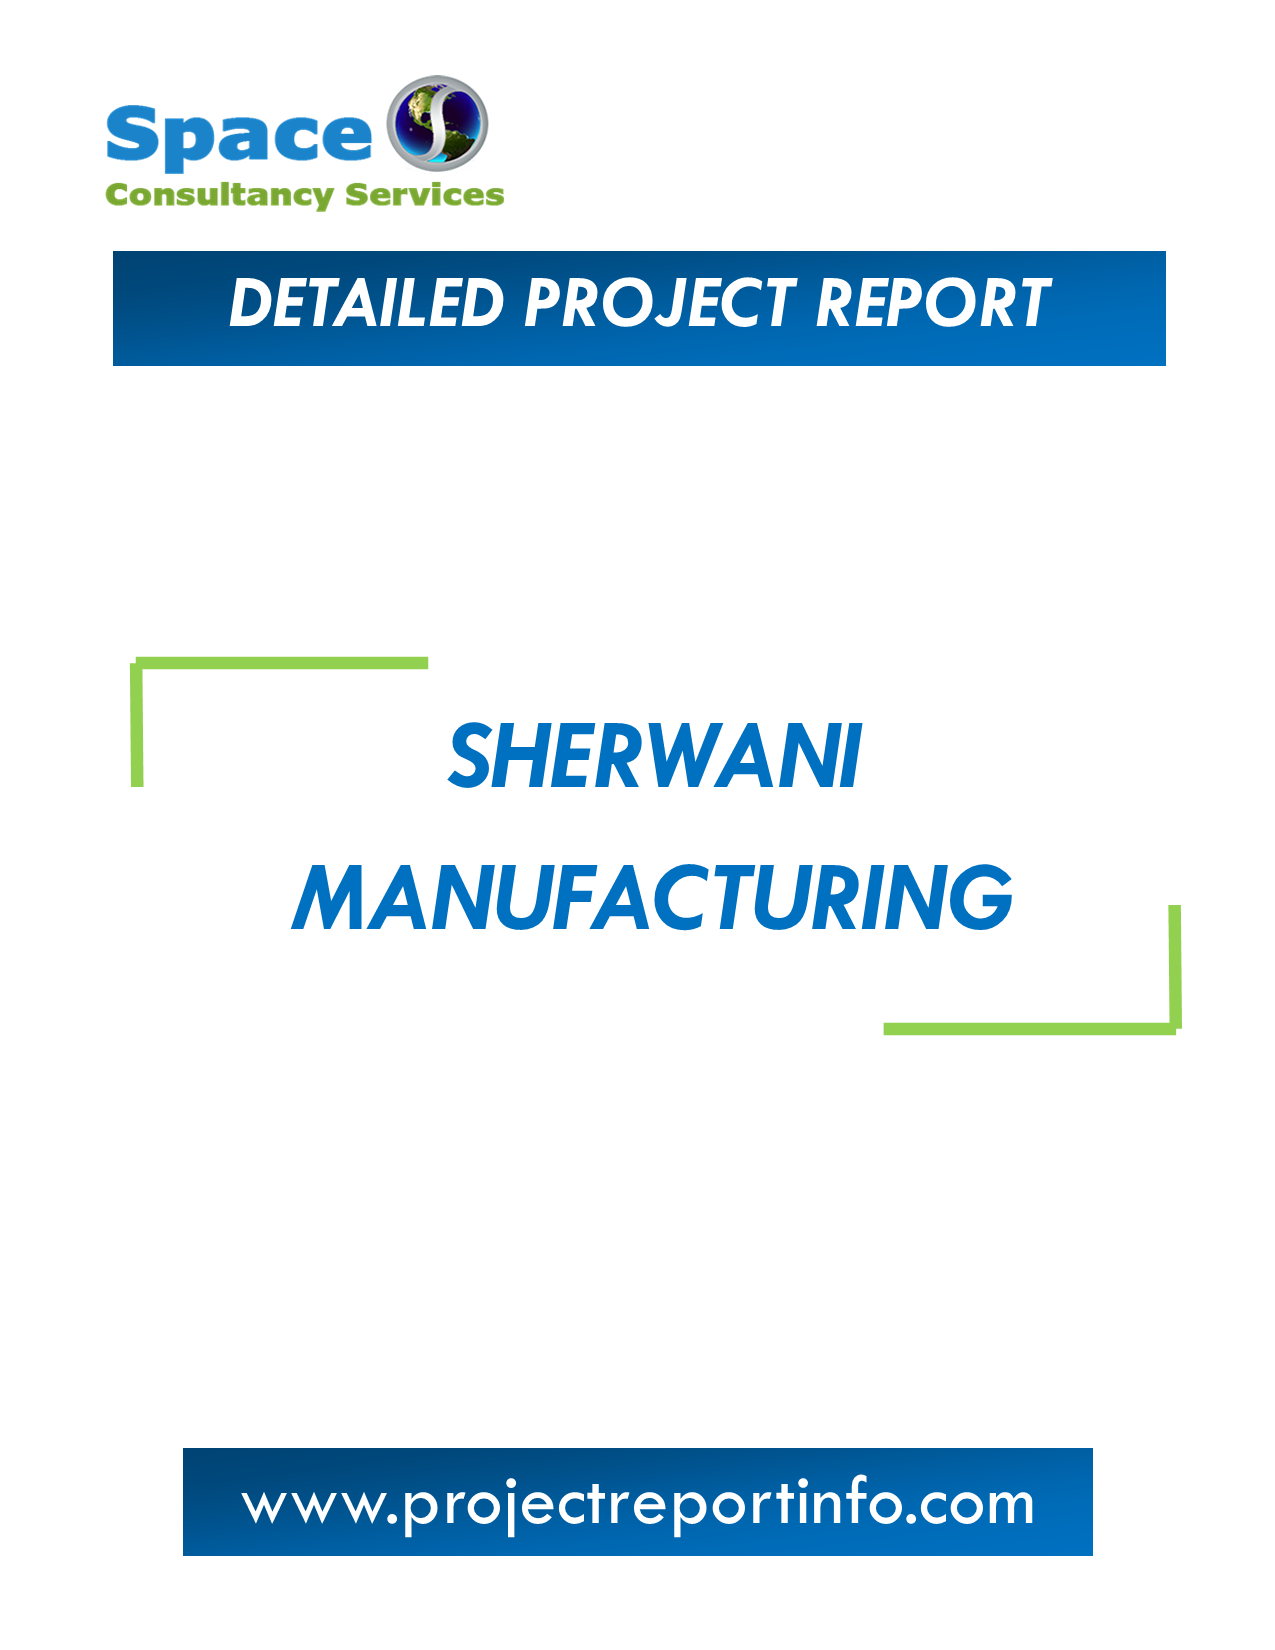 Project Report on Sherwani Manufacturing